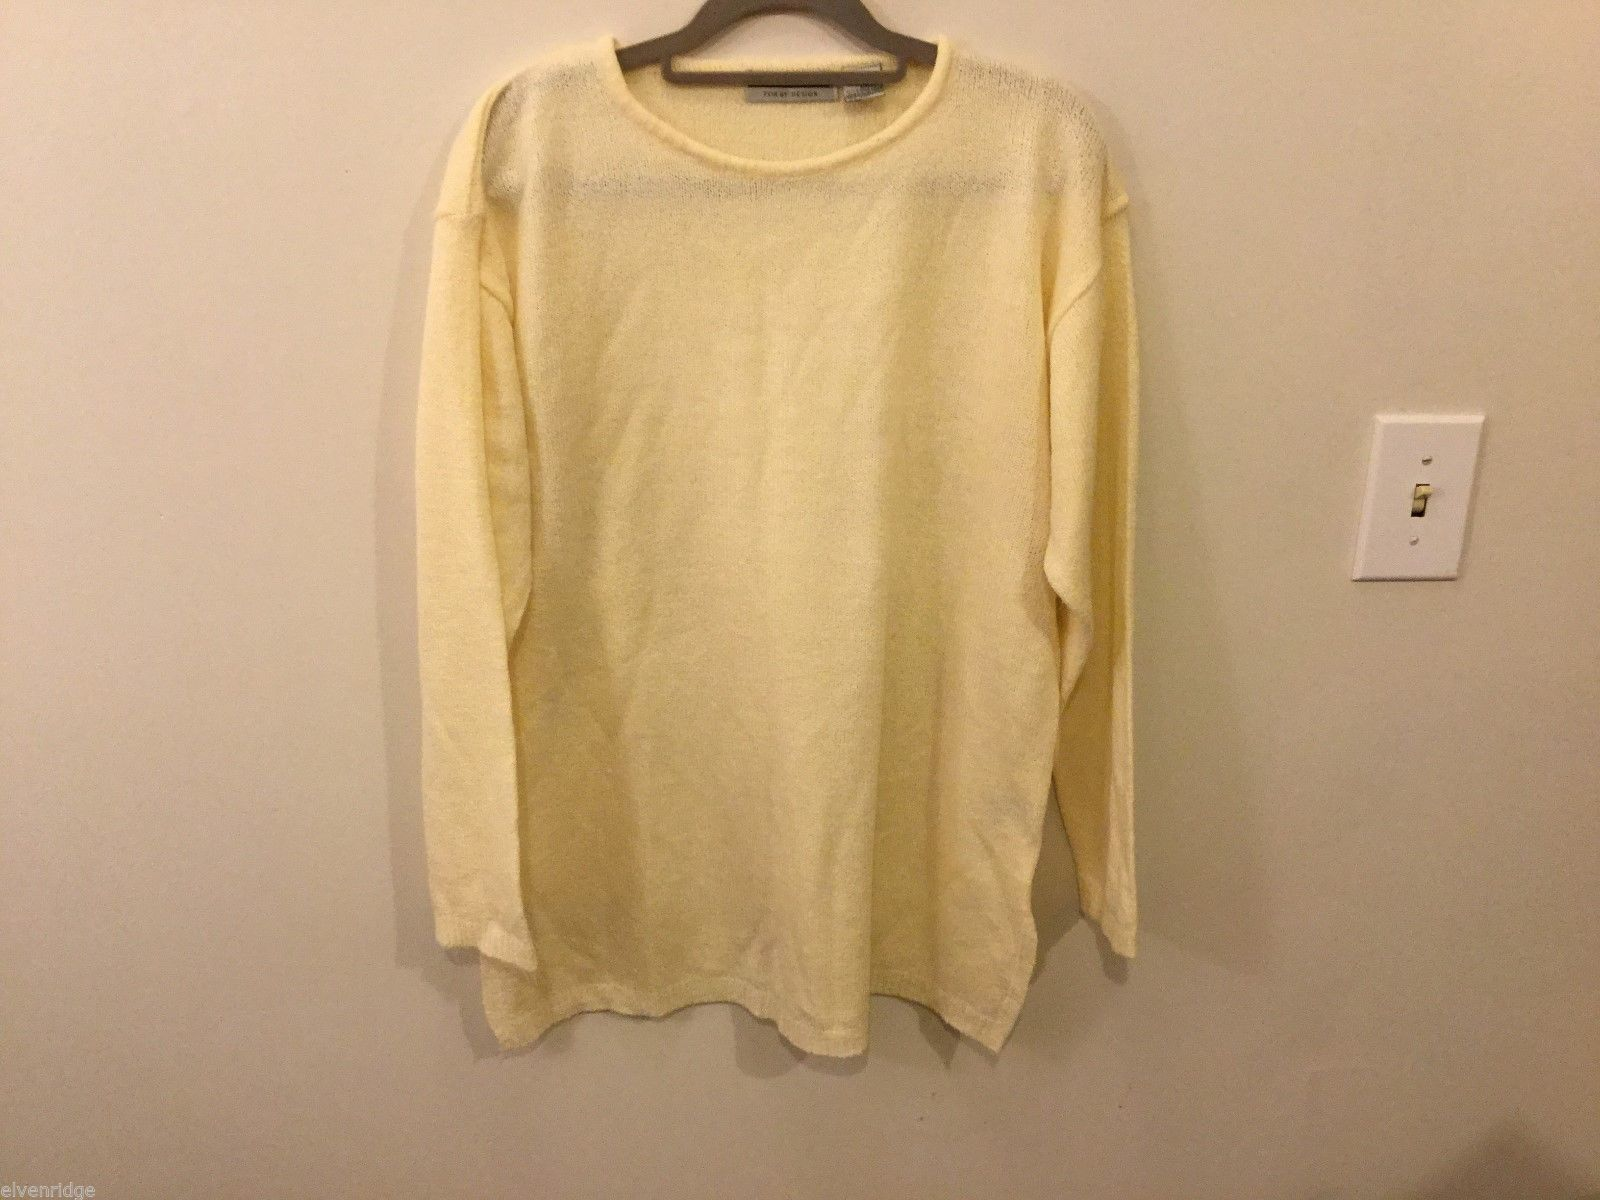 Womens Carolyn Taylor Cream Colored Sweater, Size Large